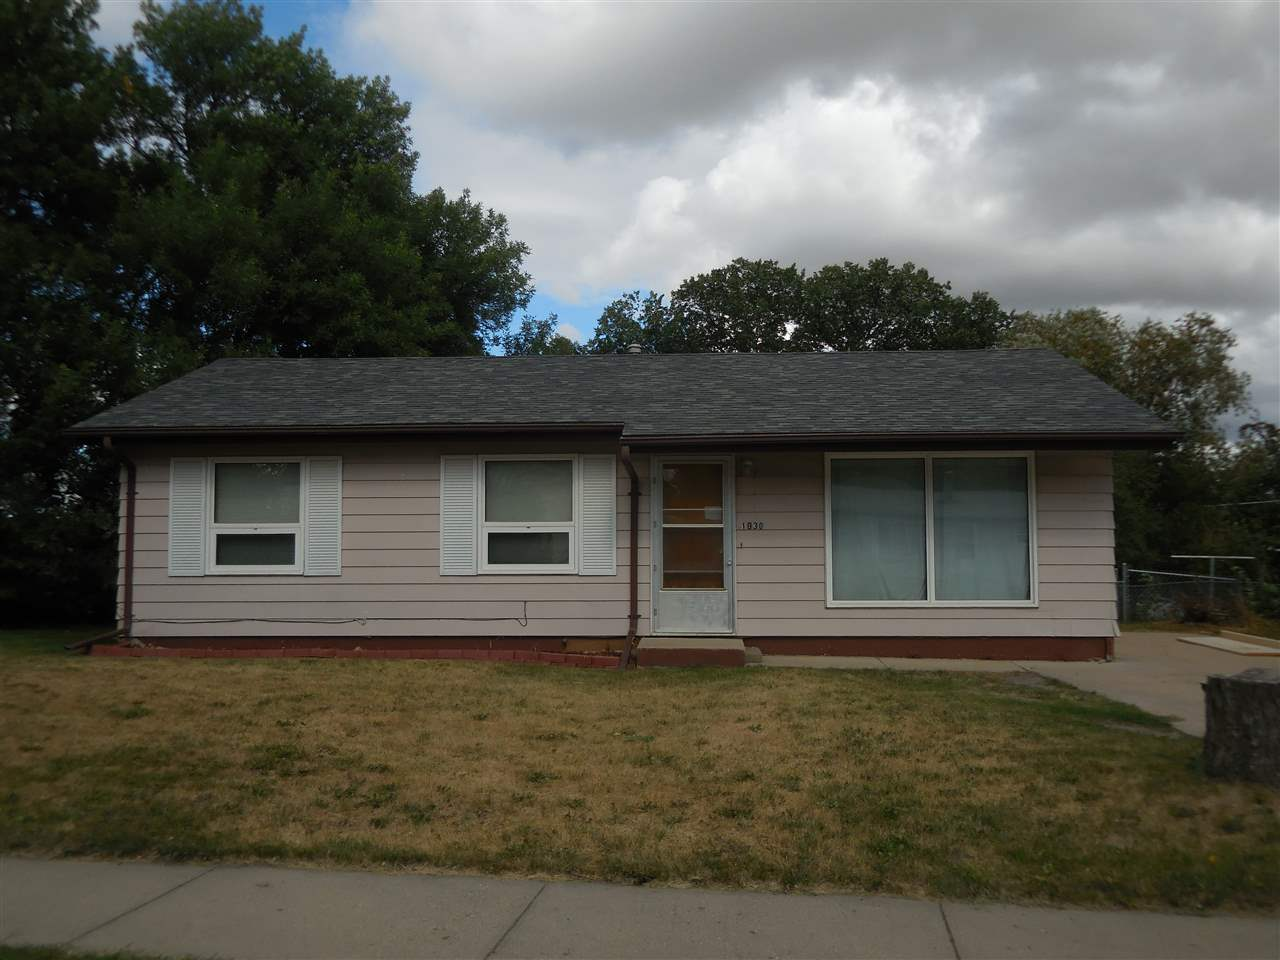 1930 NW 9th St, Minot, ND 58703